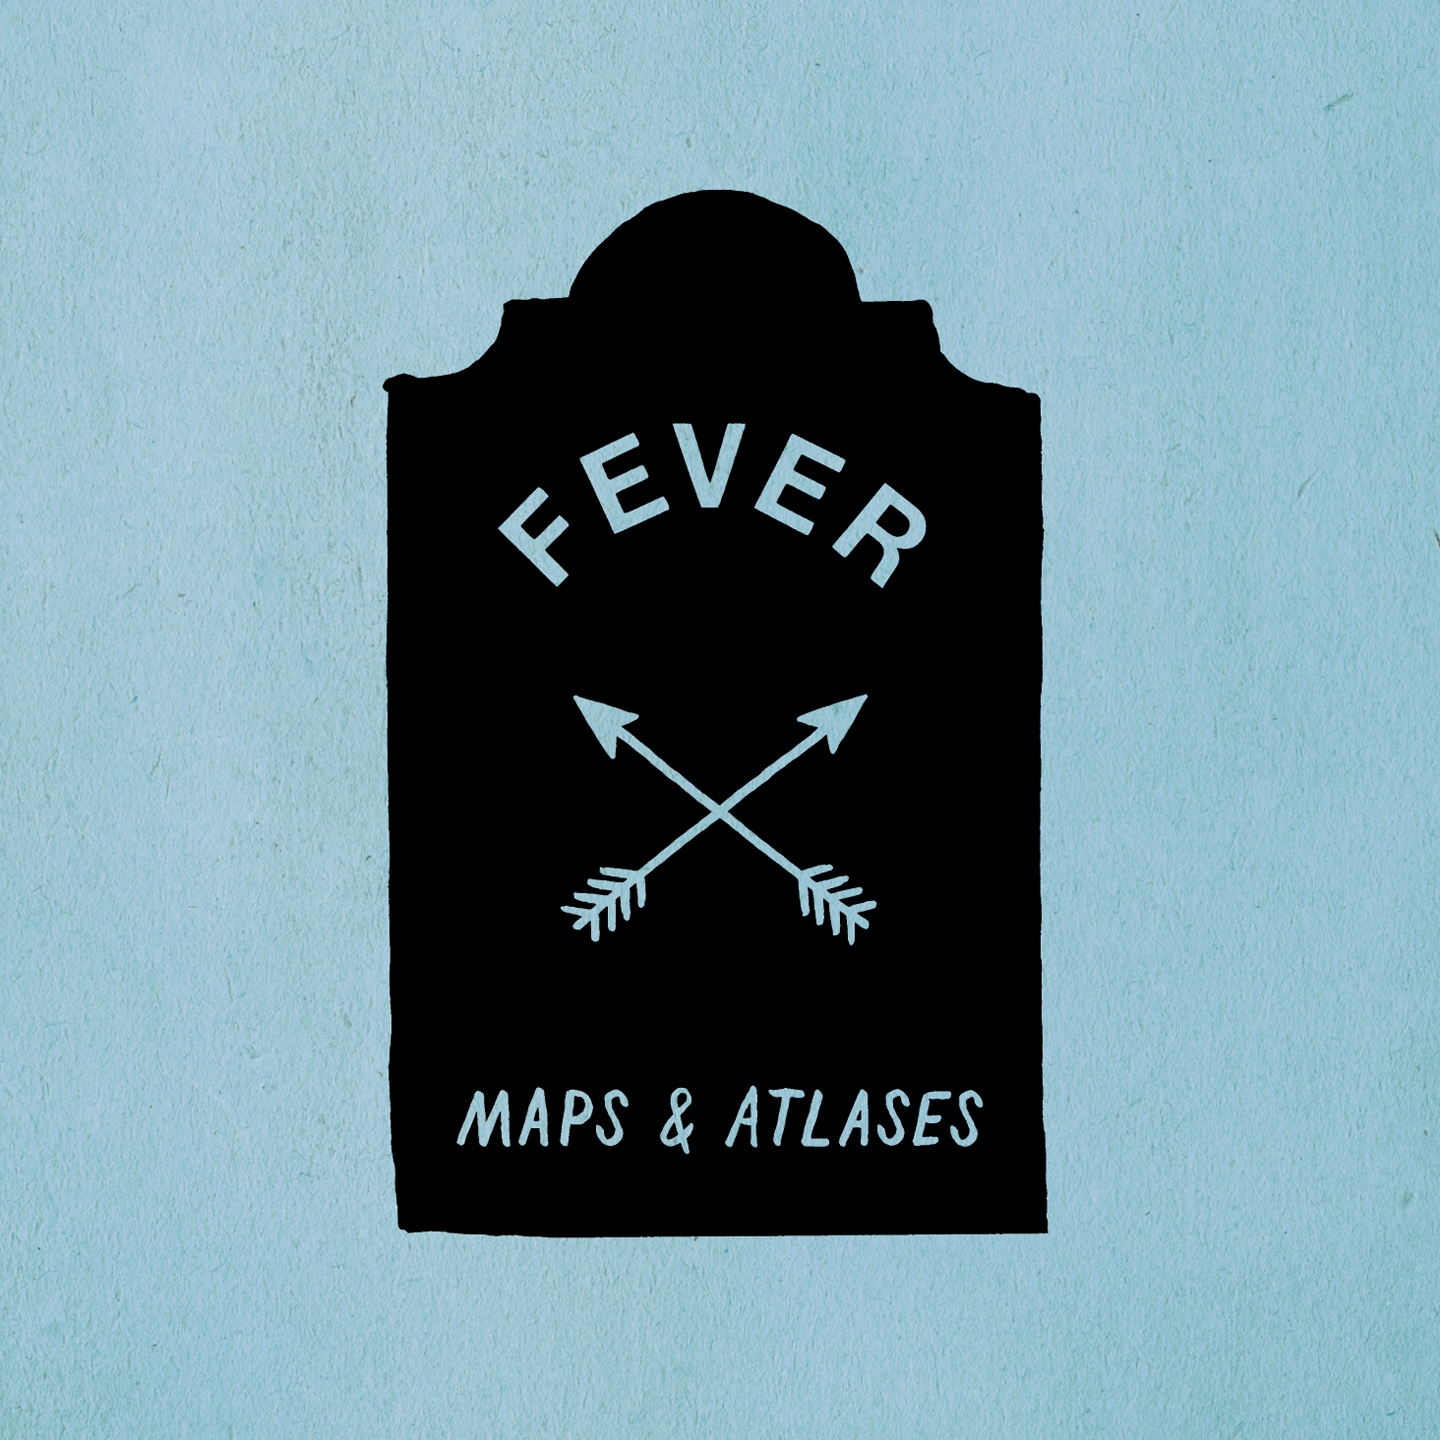 Maps & Atlases - Fever